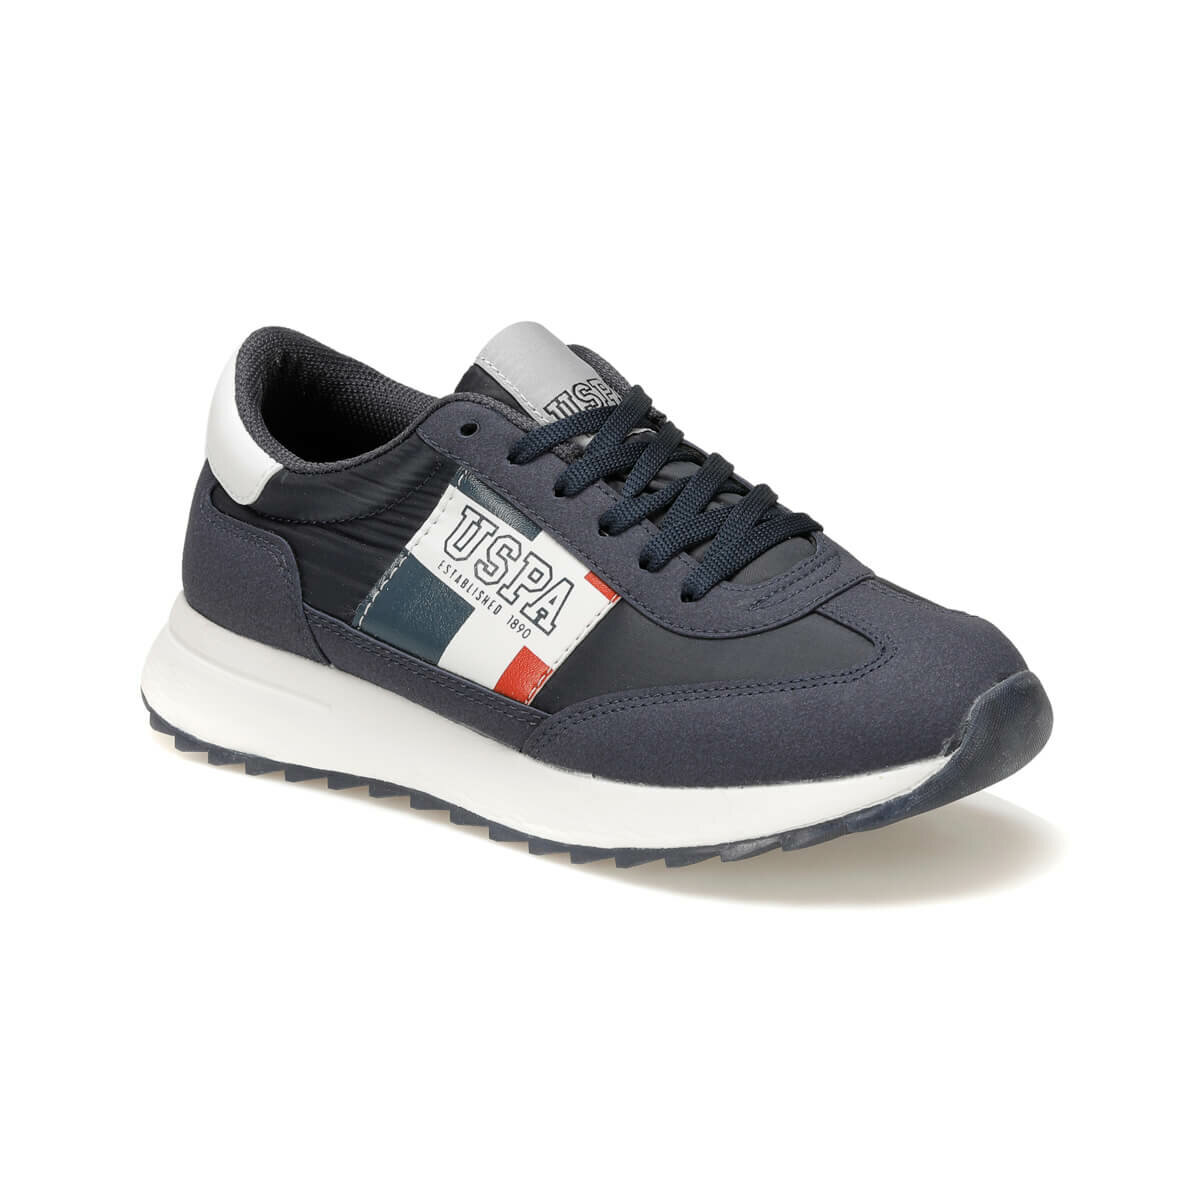 FLO ESPOSITO Navy Blue Women 'S Sneaker Shoes U.S. POLO ASSN.